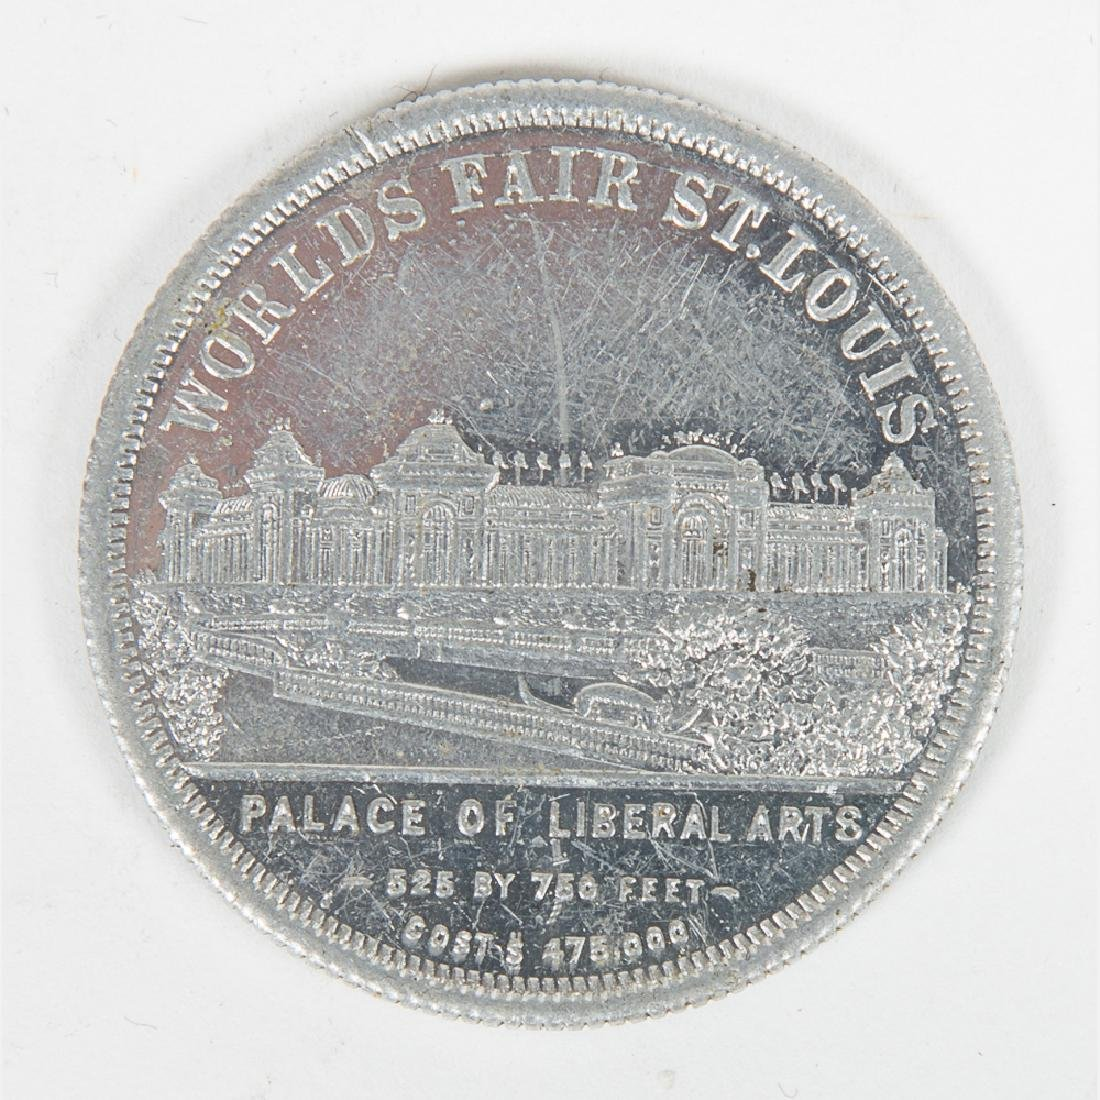 A Box Set of Five Aluminum Palace Dollars from the - 4